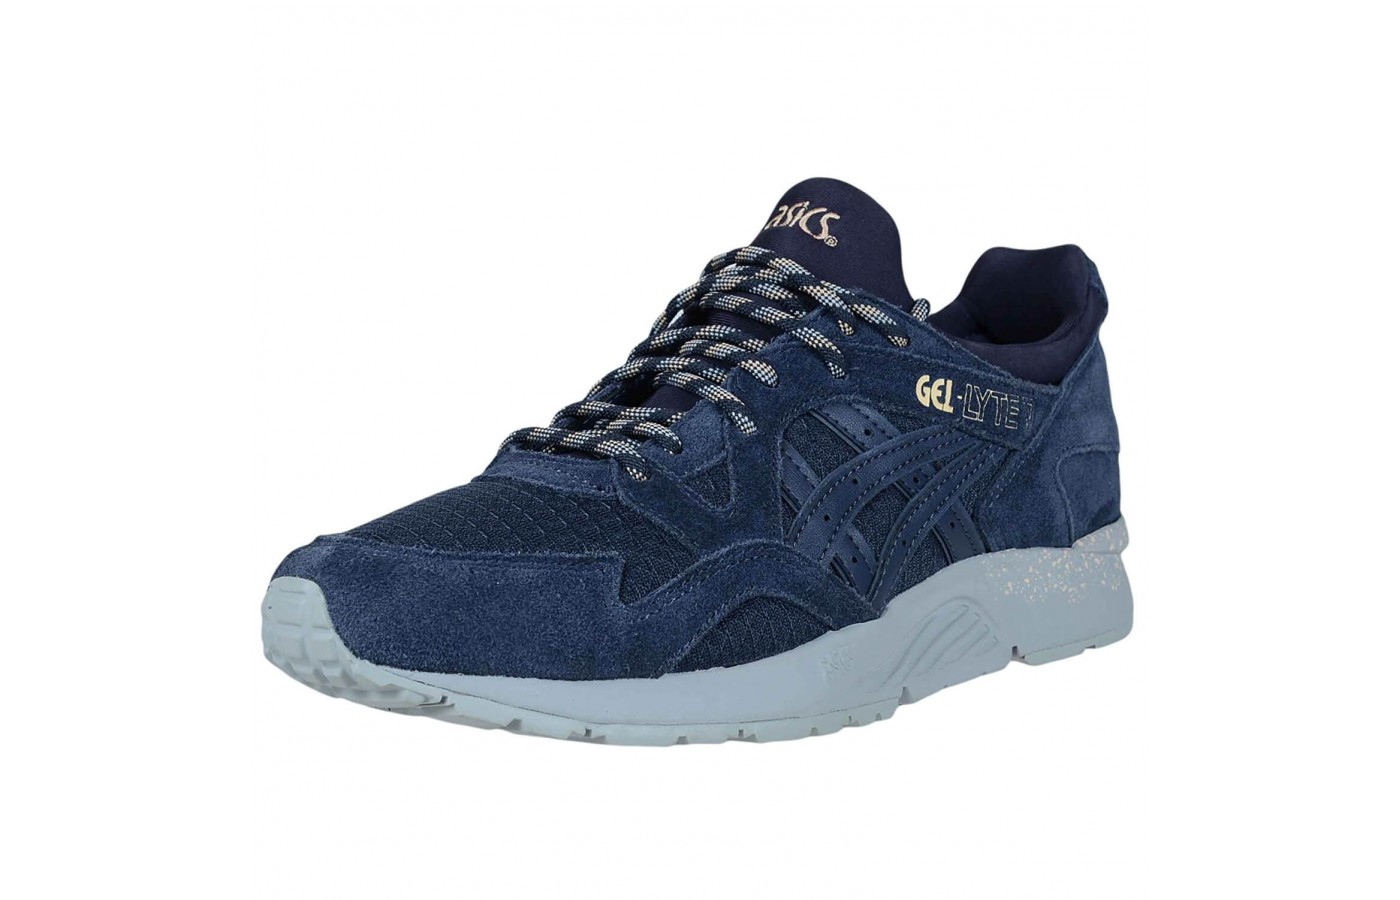 The Asics Gel Lyte V has standard laces